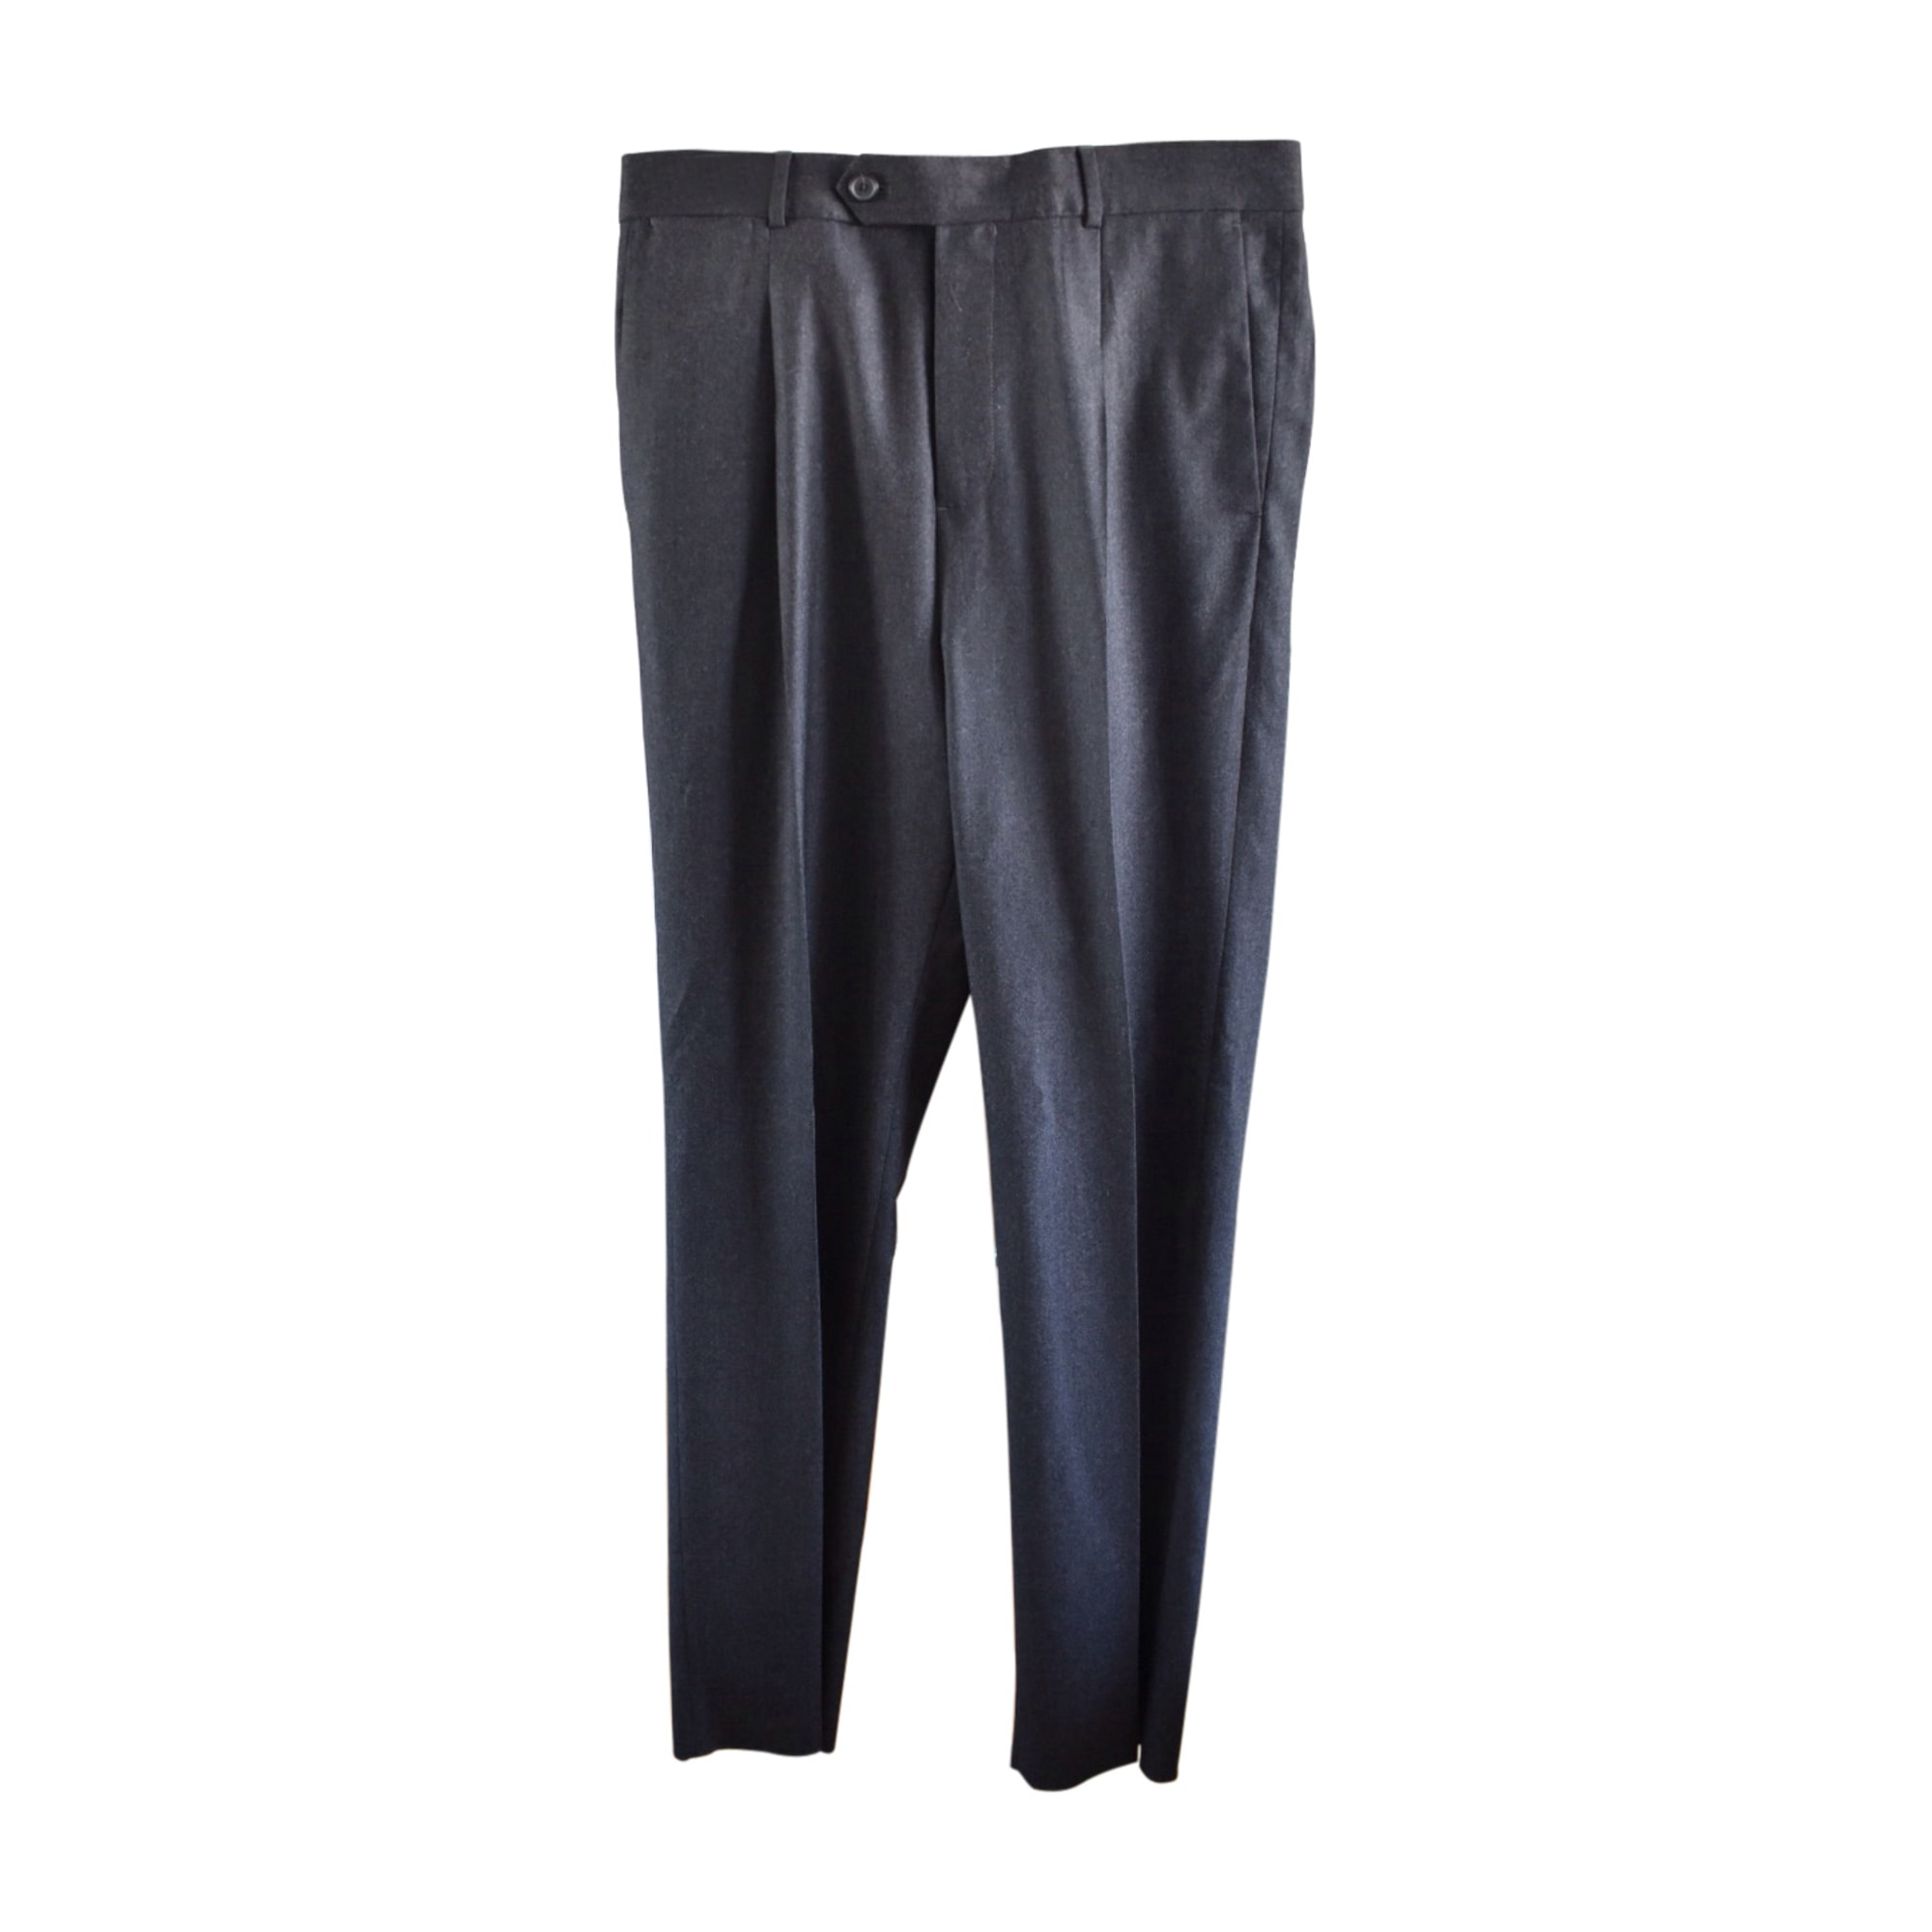 Straight Leg Pants LOUIS VUITTON Gray, charcoal